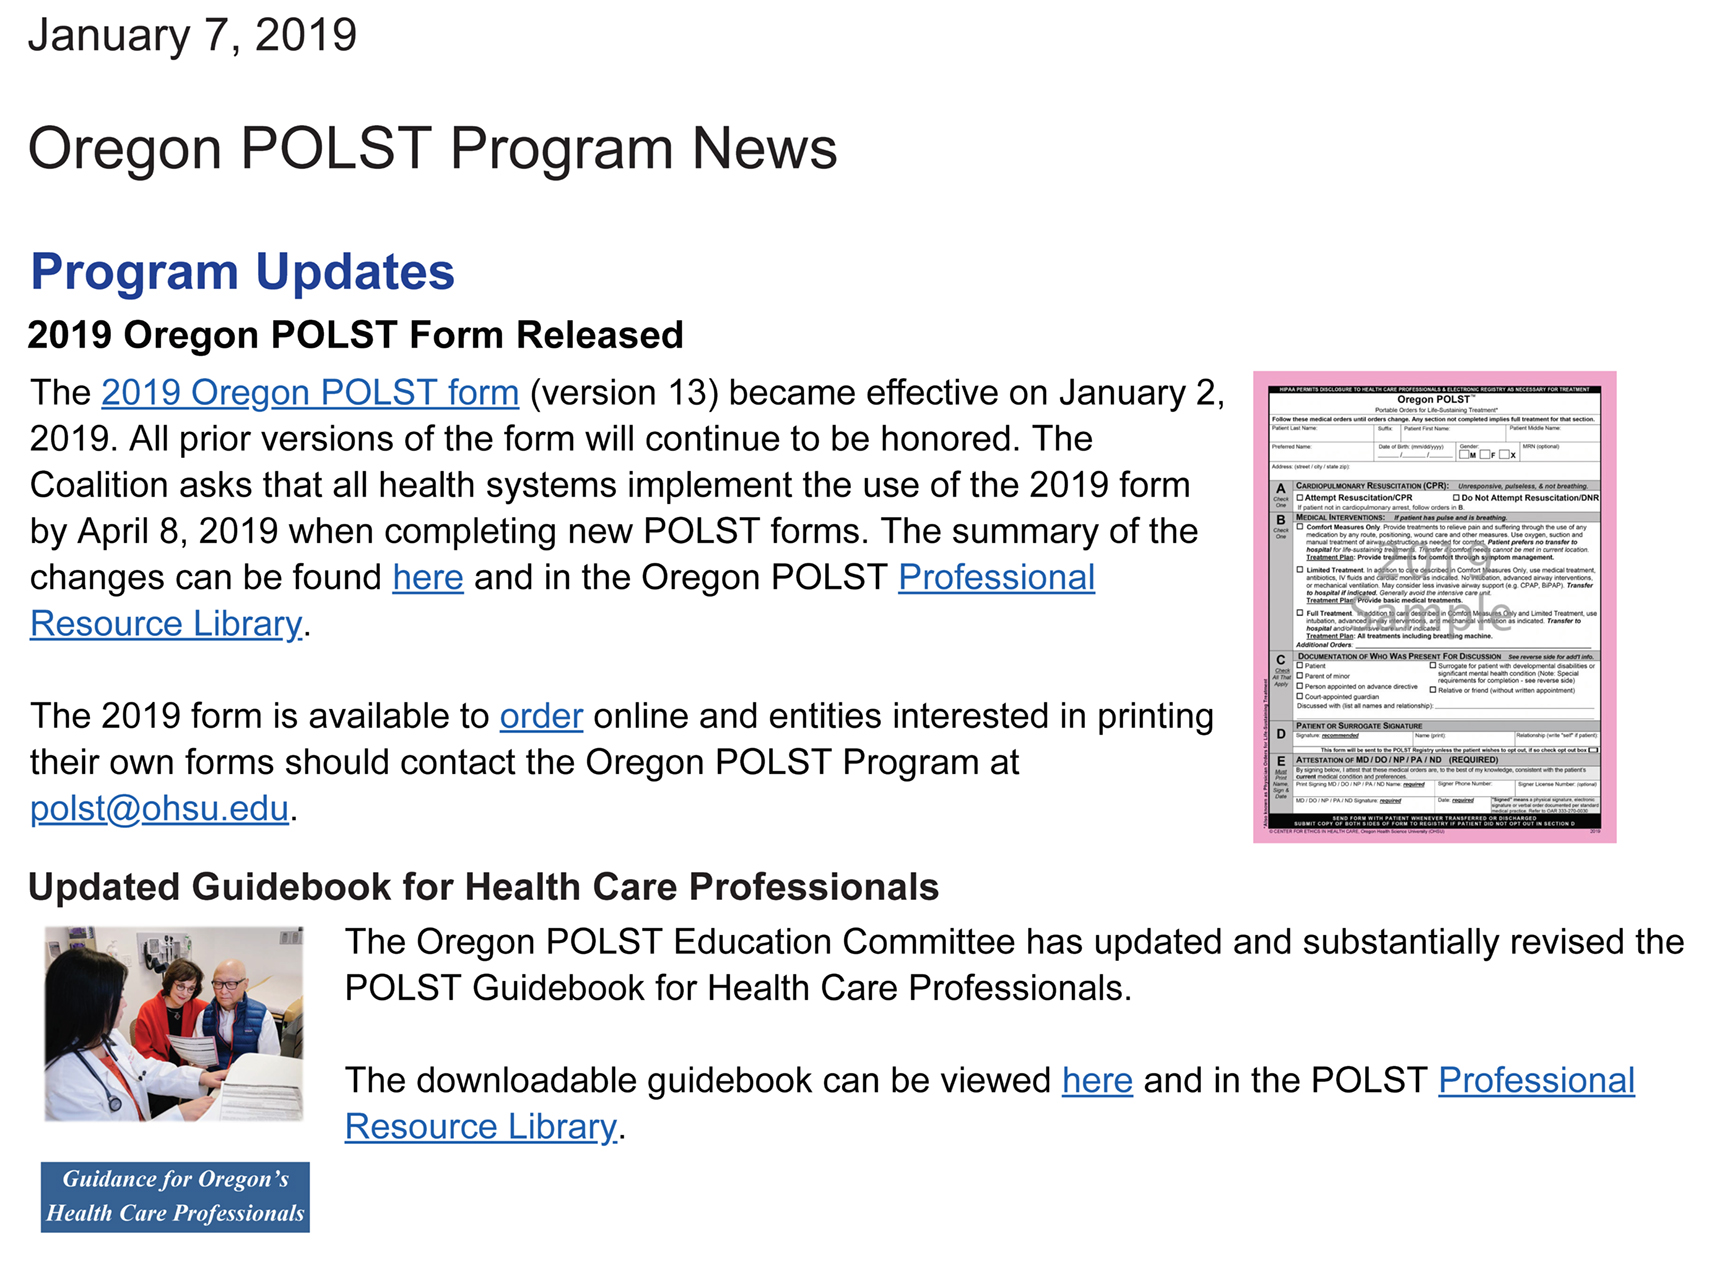 2019.01.07 Oregon POLST Program News (social media).jpg